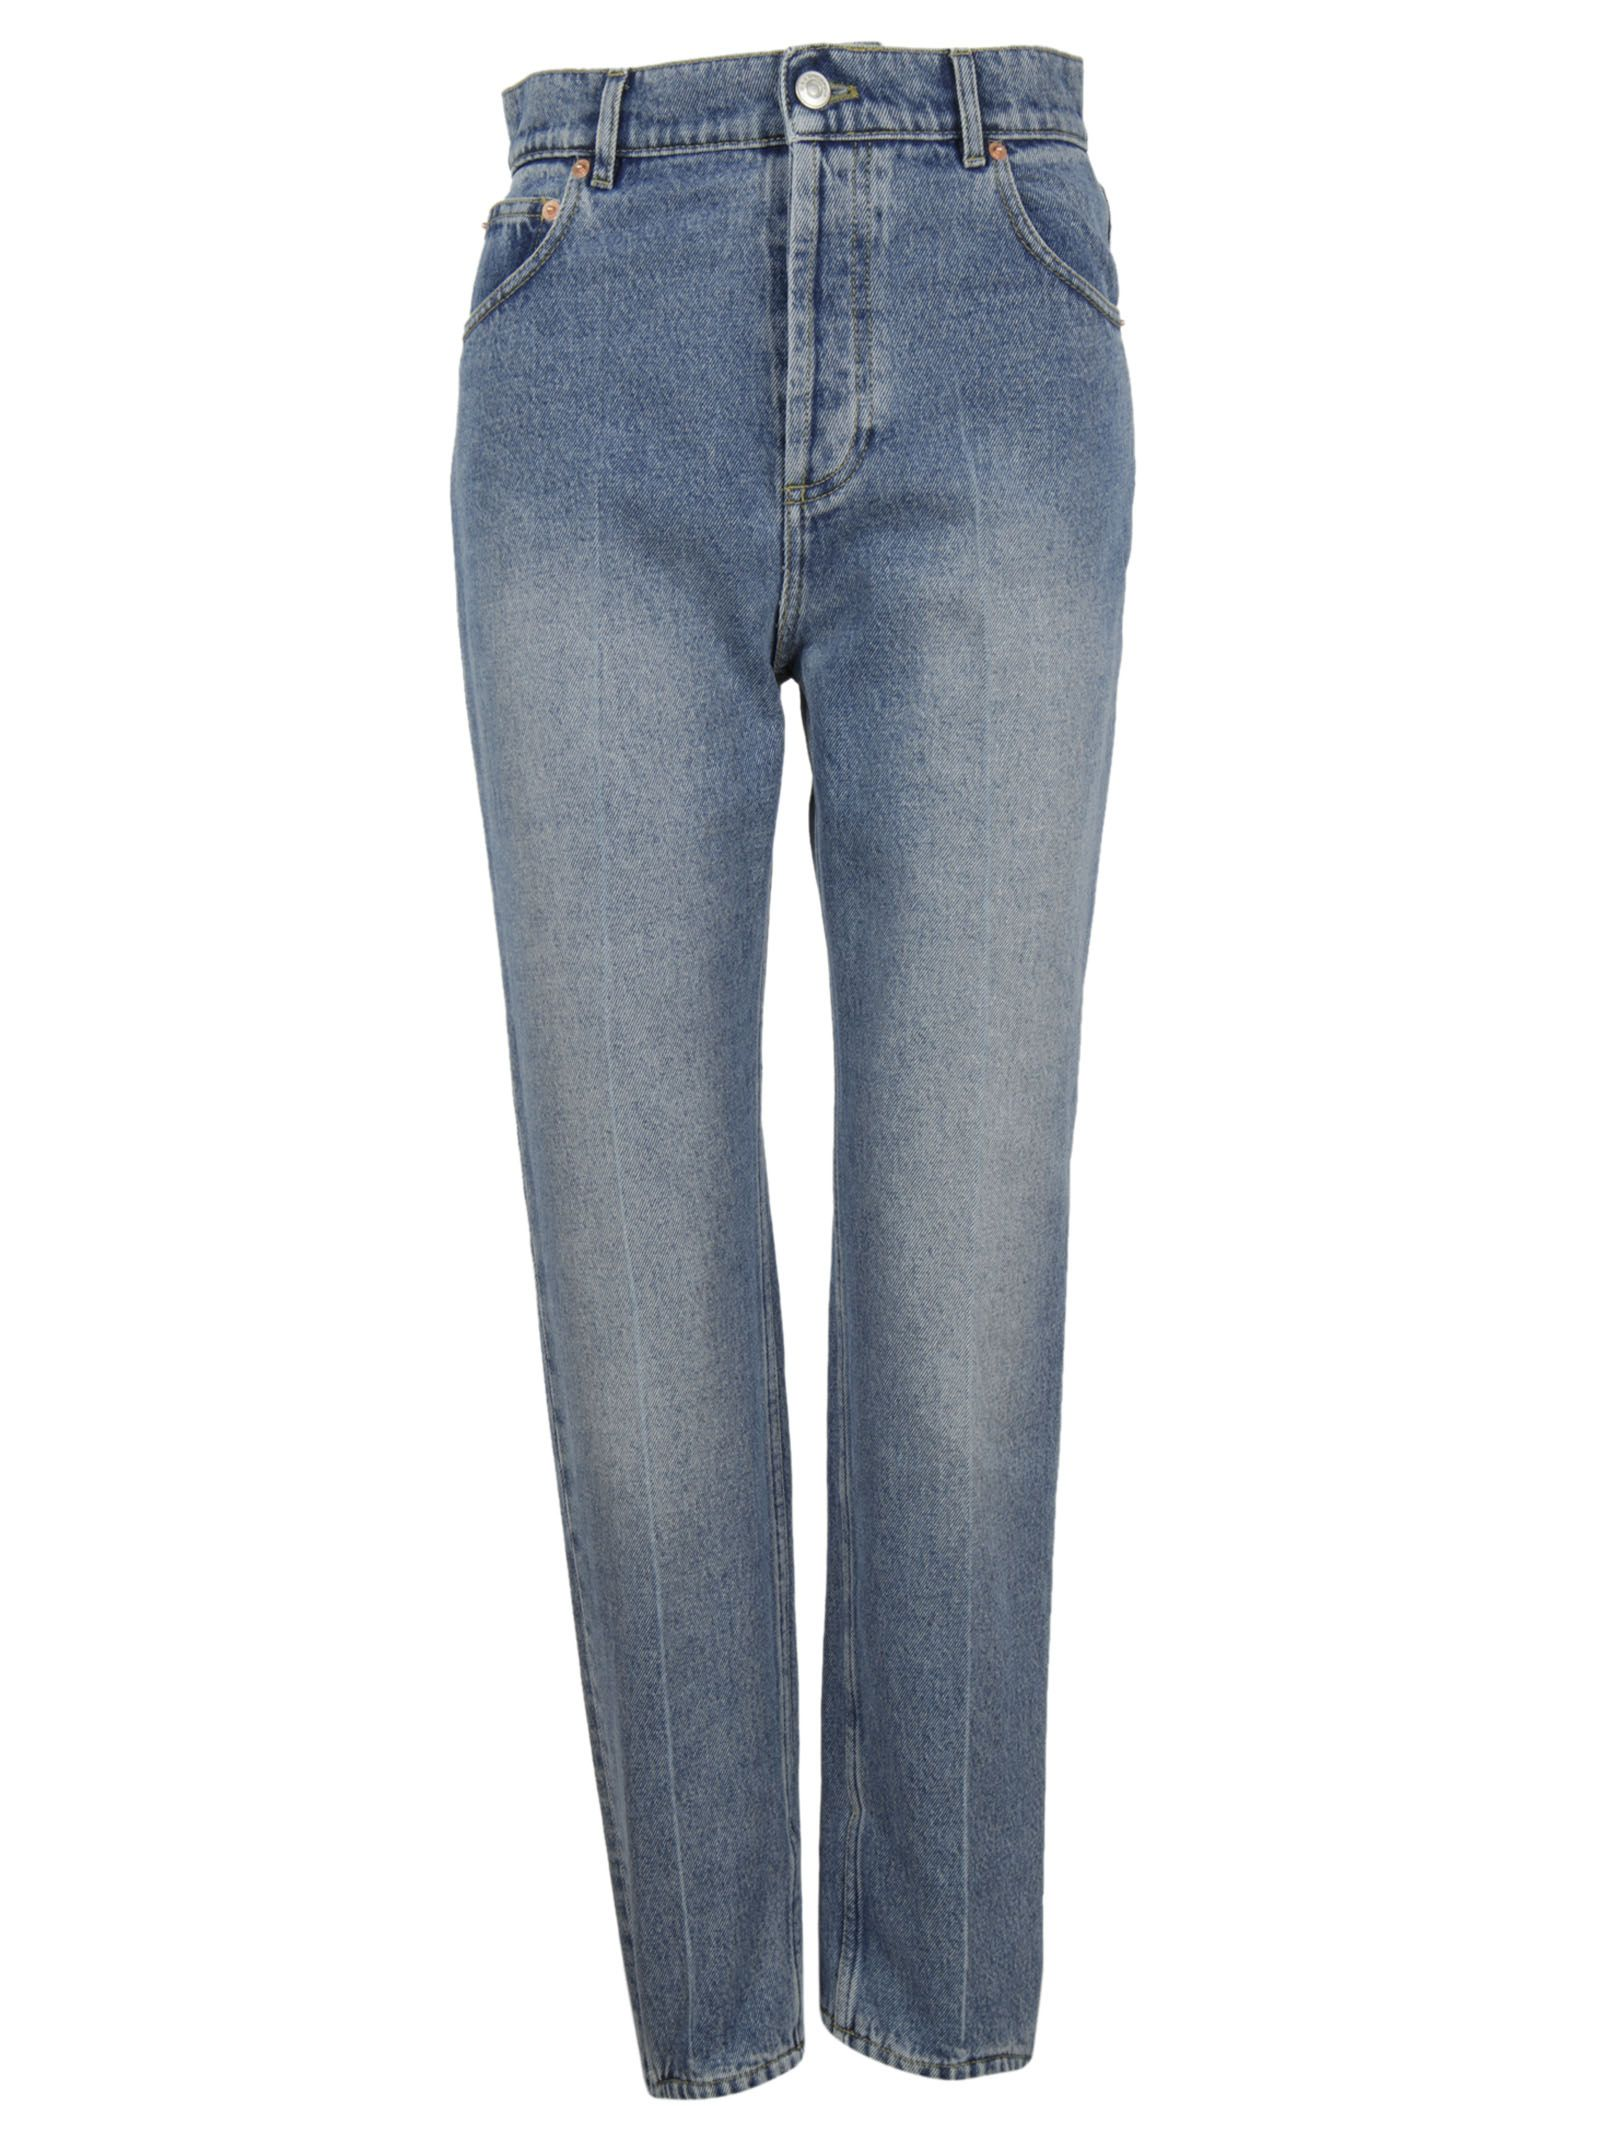 Blue Stirrup Denim Pants - Balenciaga - Circus